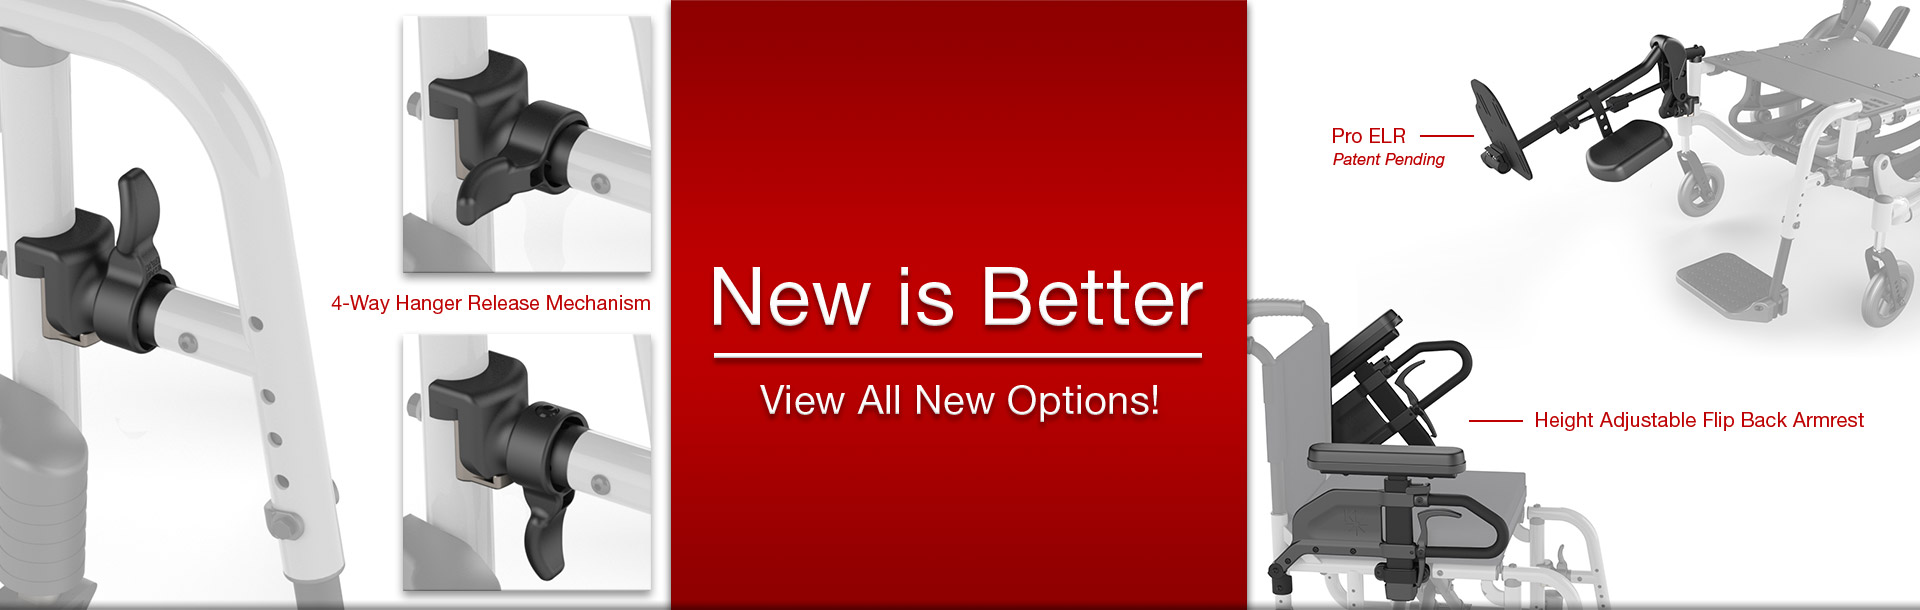 New Options Available!